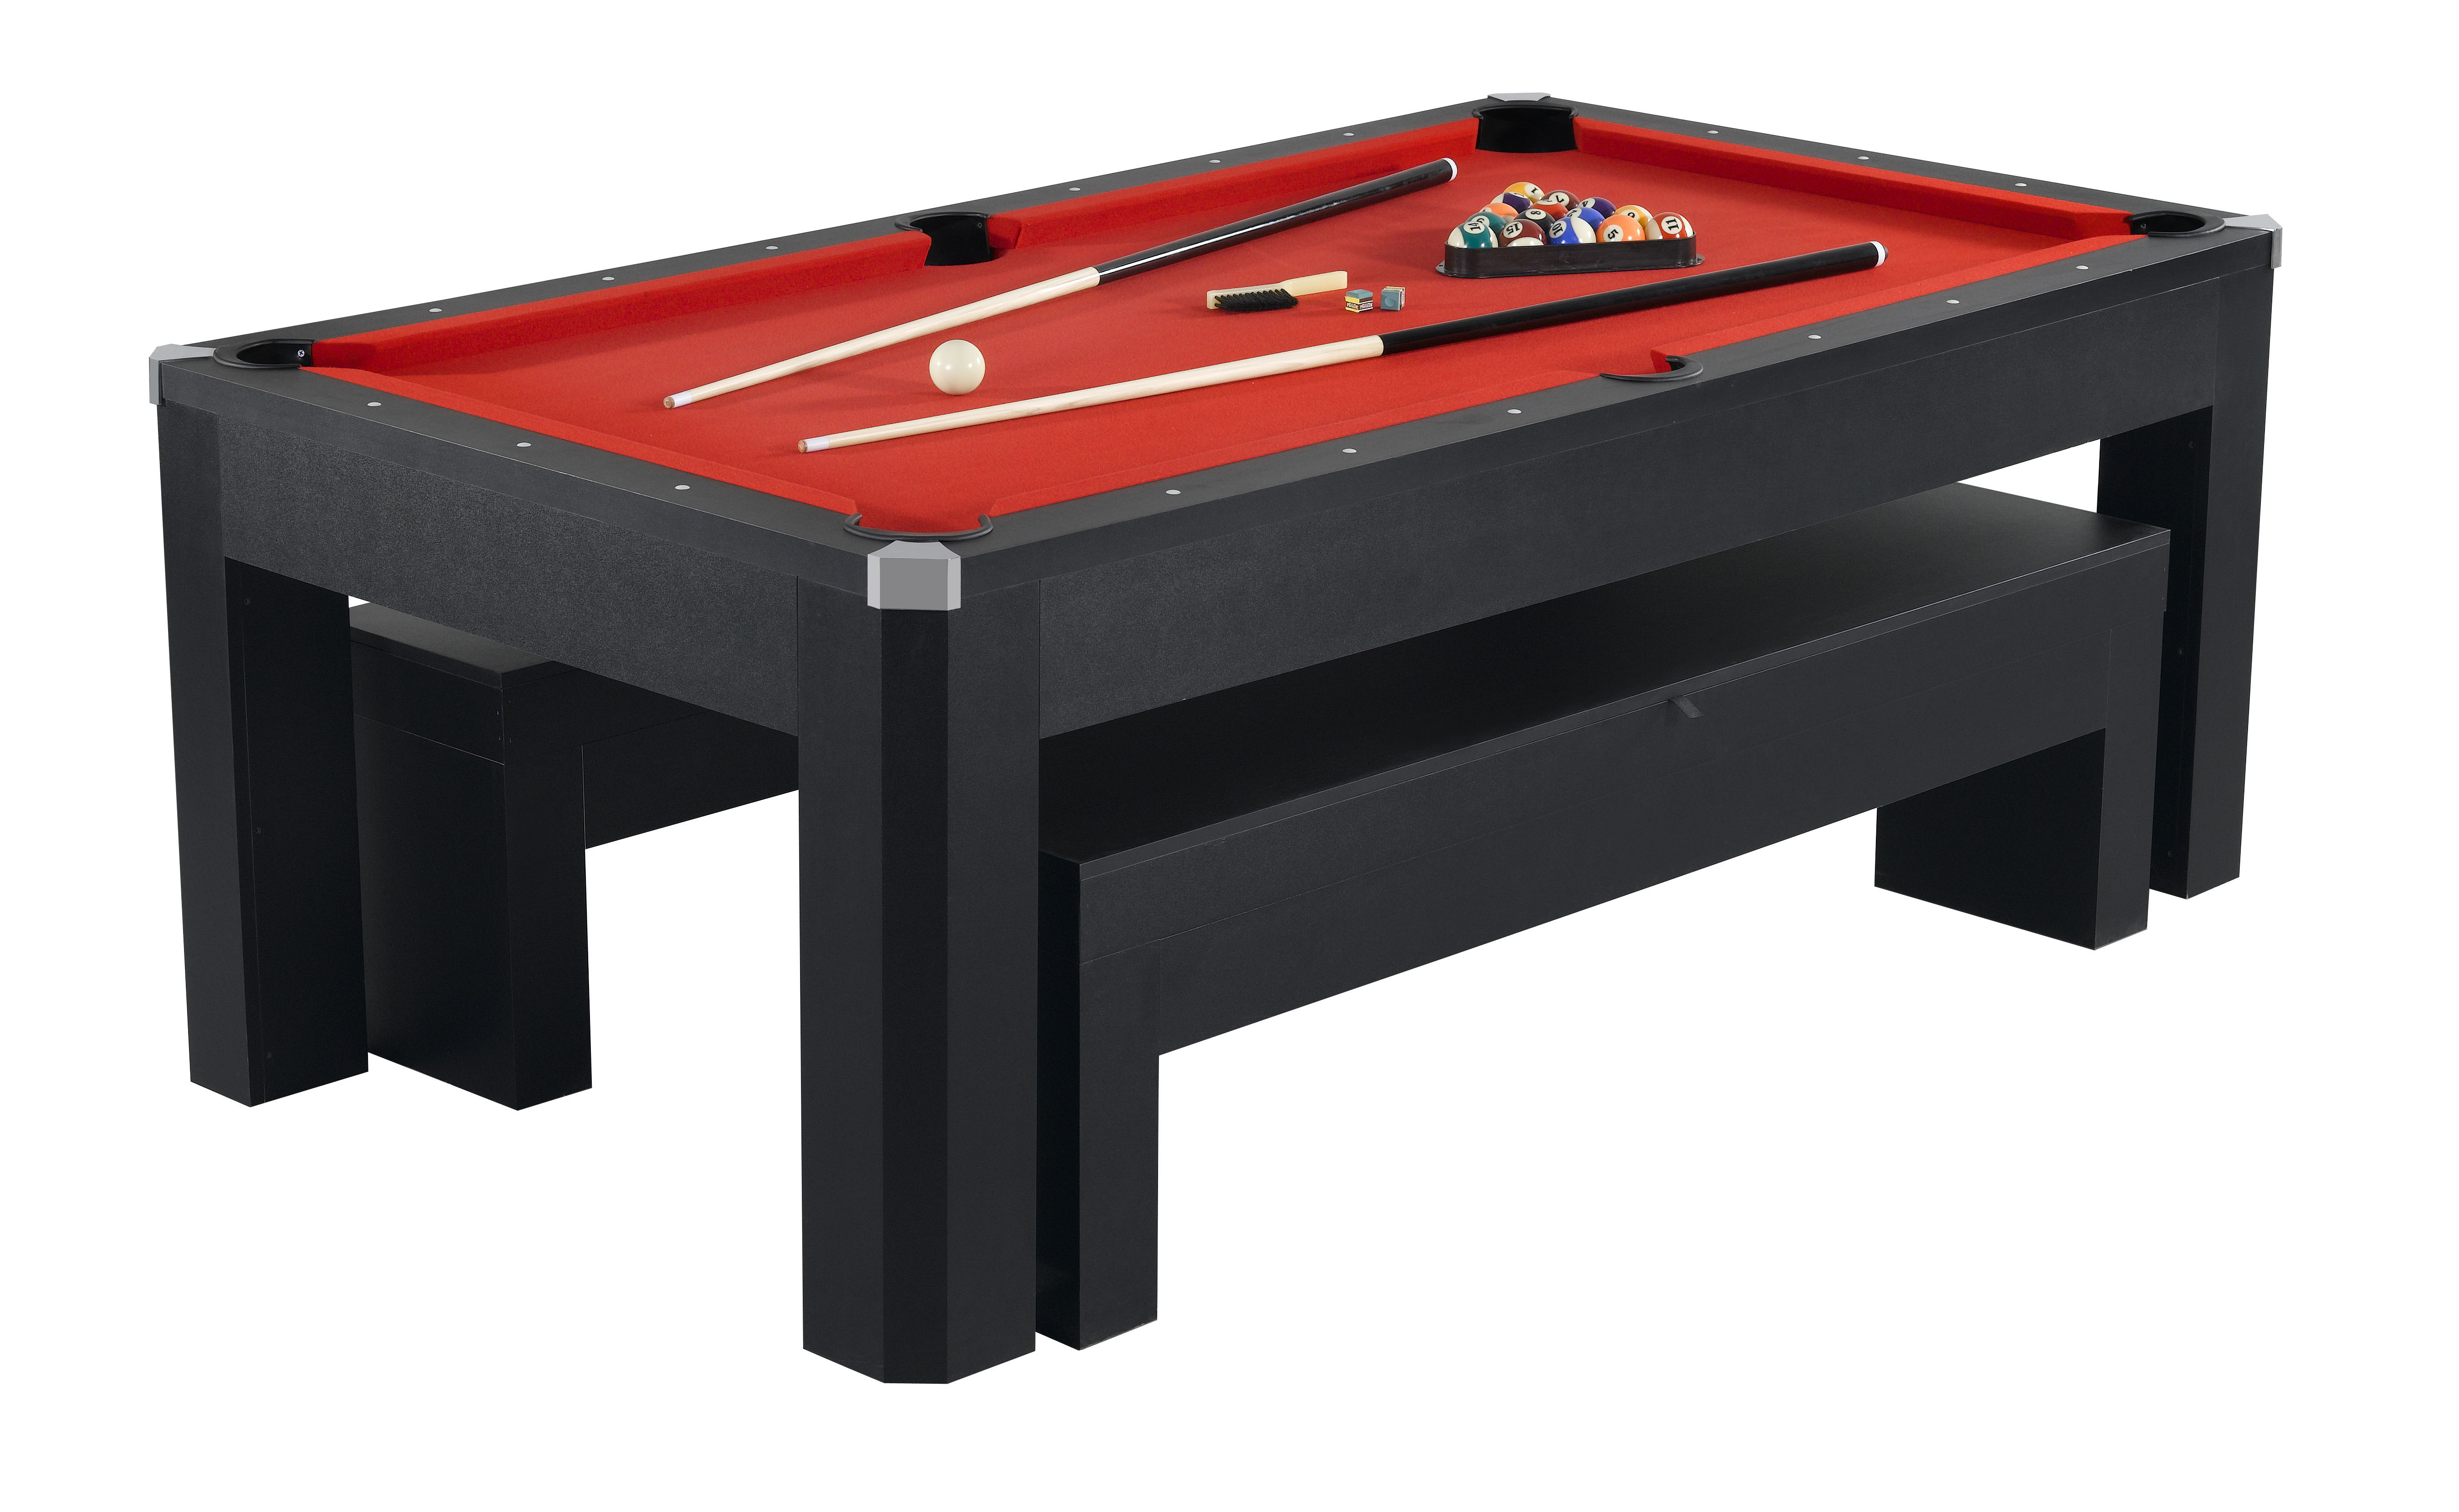 park table with royal pool tables benches pools game avenue multi set swimming